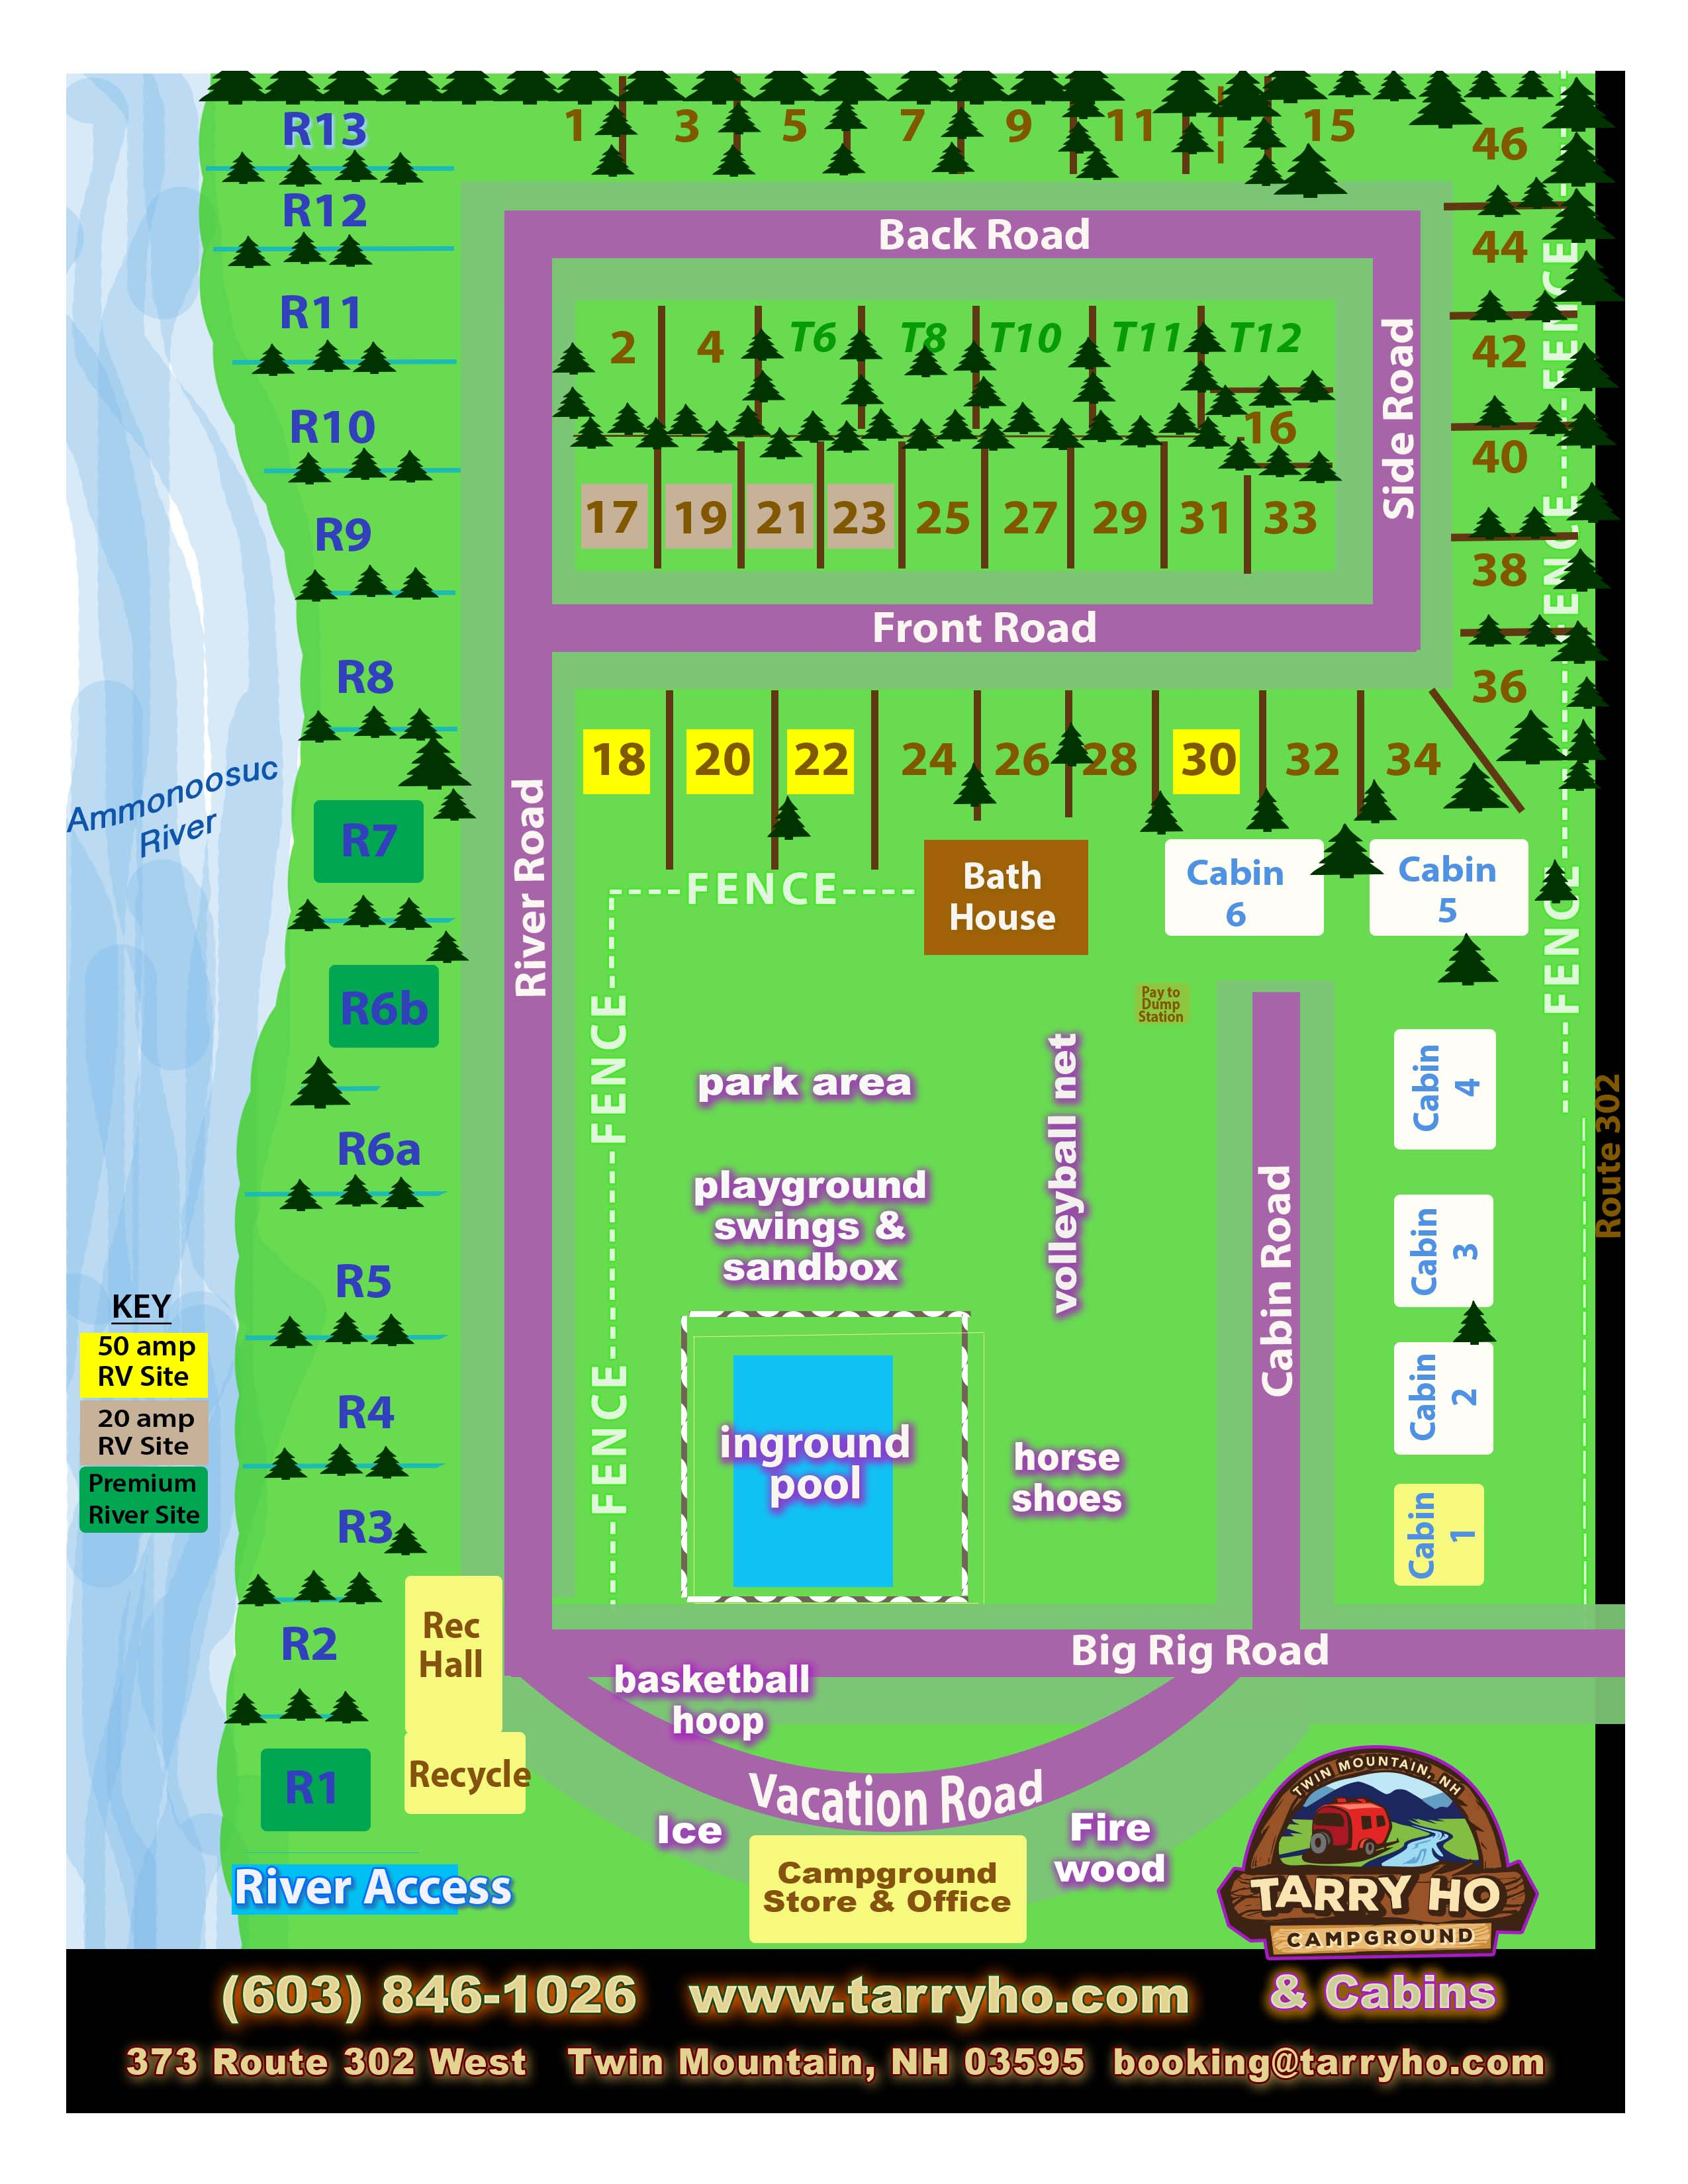 Cottages amp campground rentals riverview cottages campground jackman - Reserve Your Spot Call 603 846 1026 Click To View Tarry Ho Campground Map